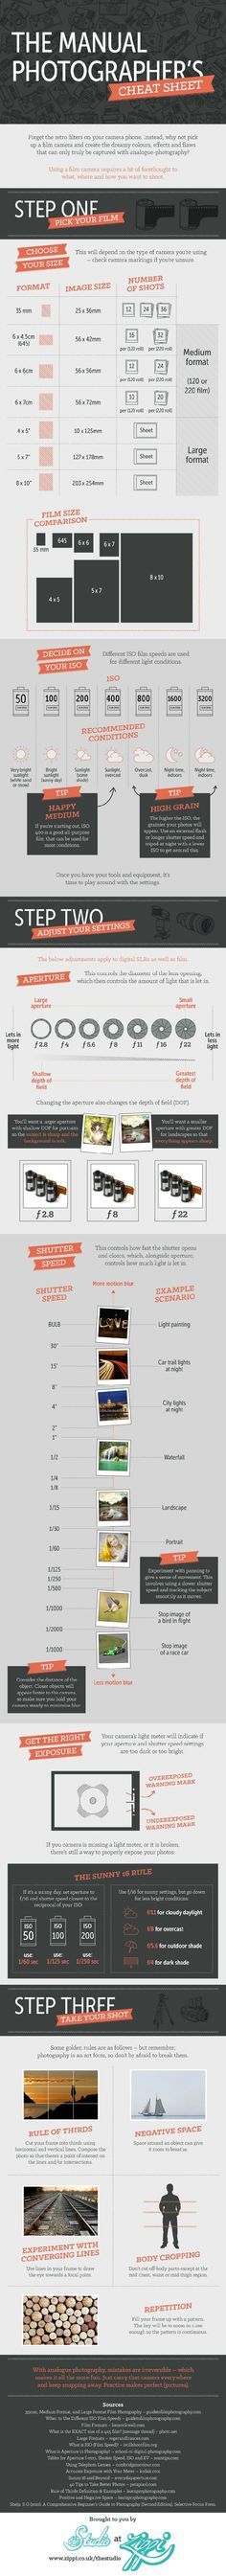 This infographic/cheat sheet from Zippi might be helpful for those looking to get out of auto mode and gaining more control over their cameras. While section 1 is much more for those shooting with film the rest is relevant for digital photography. Photography Cheat Sheets, Photography Basics, Photography Lessons, Photography Camera, Photography Business, Photography Tutorials, Photography Hashtags, Photography Ideas, Balloons Photography